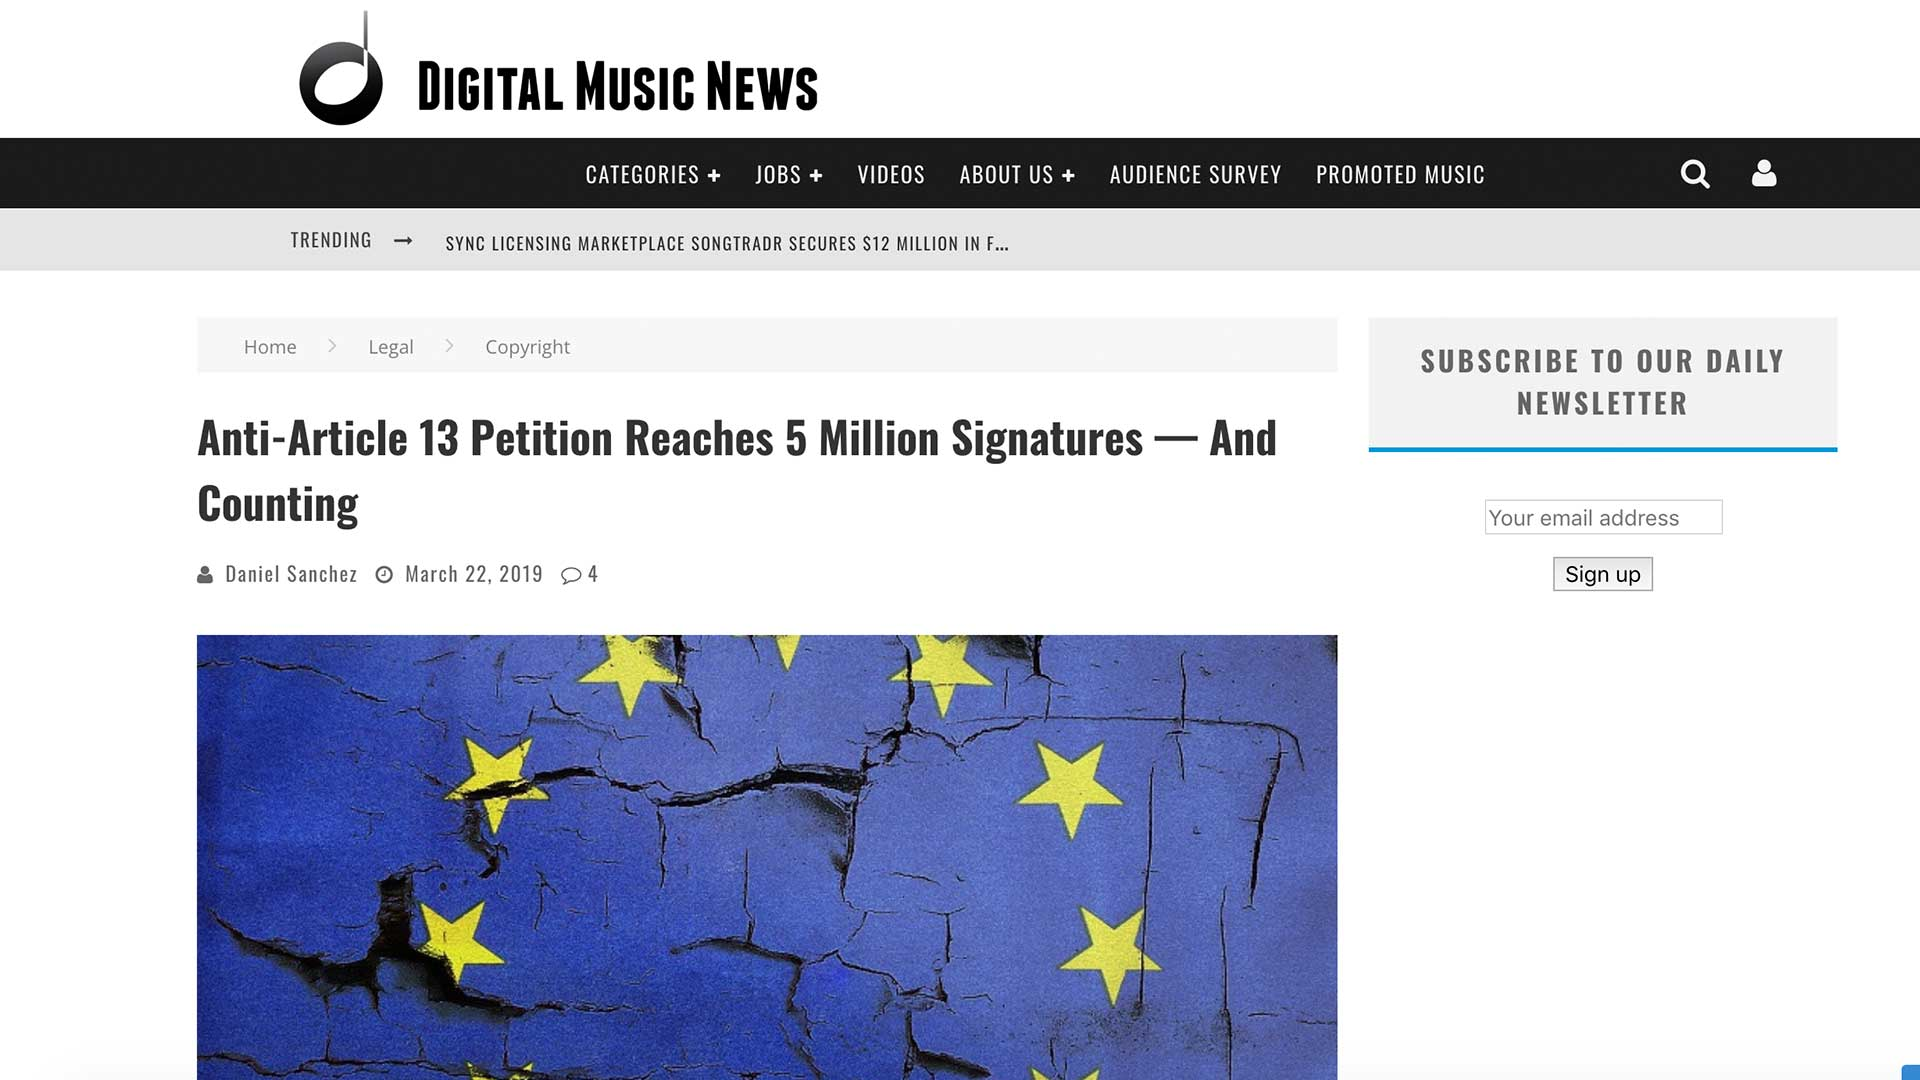 Fairness Rocks News Anti-Article 13 Petition Reaches 5 Million Signatures — And Counting